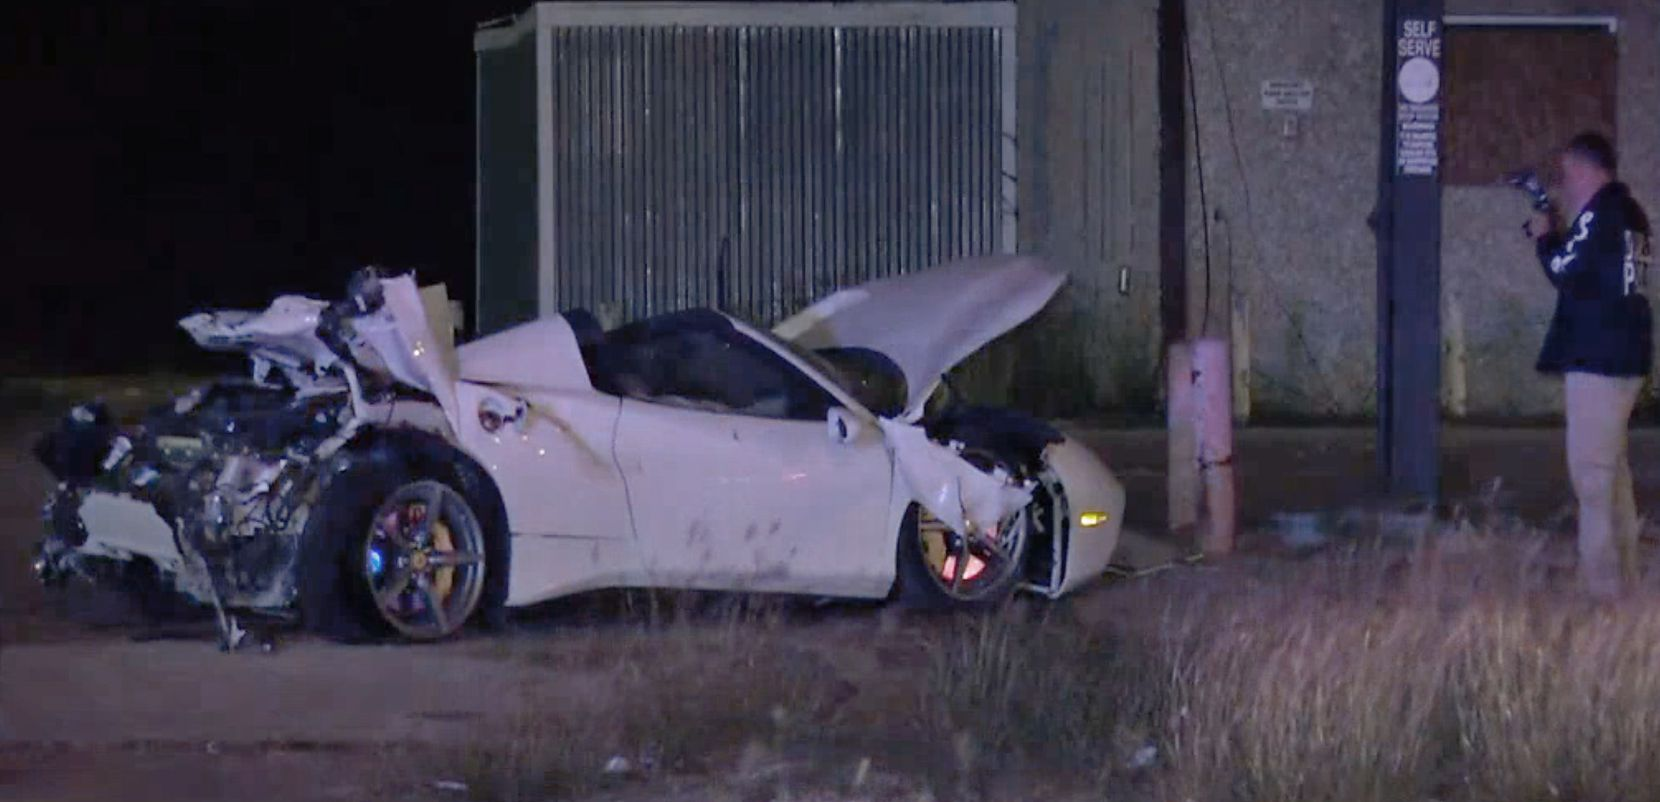 Boxer Errol Spence, a welterweight champion from DeSoto, was seriously injured but was expected to survive his injuries after he was ejected from a Ferrari on Thursday morning.